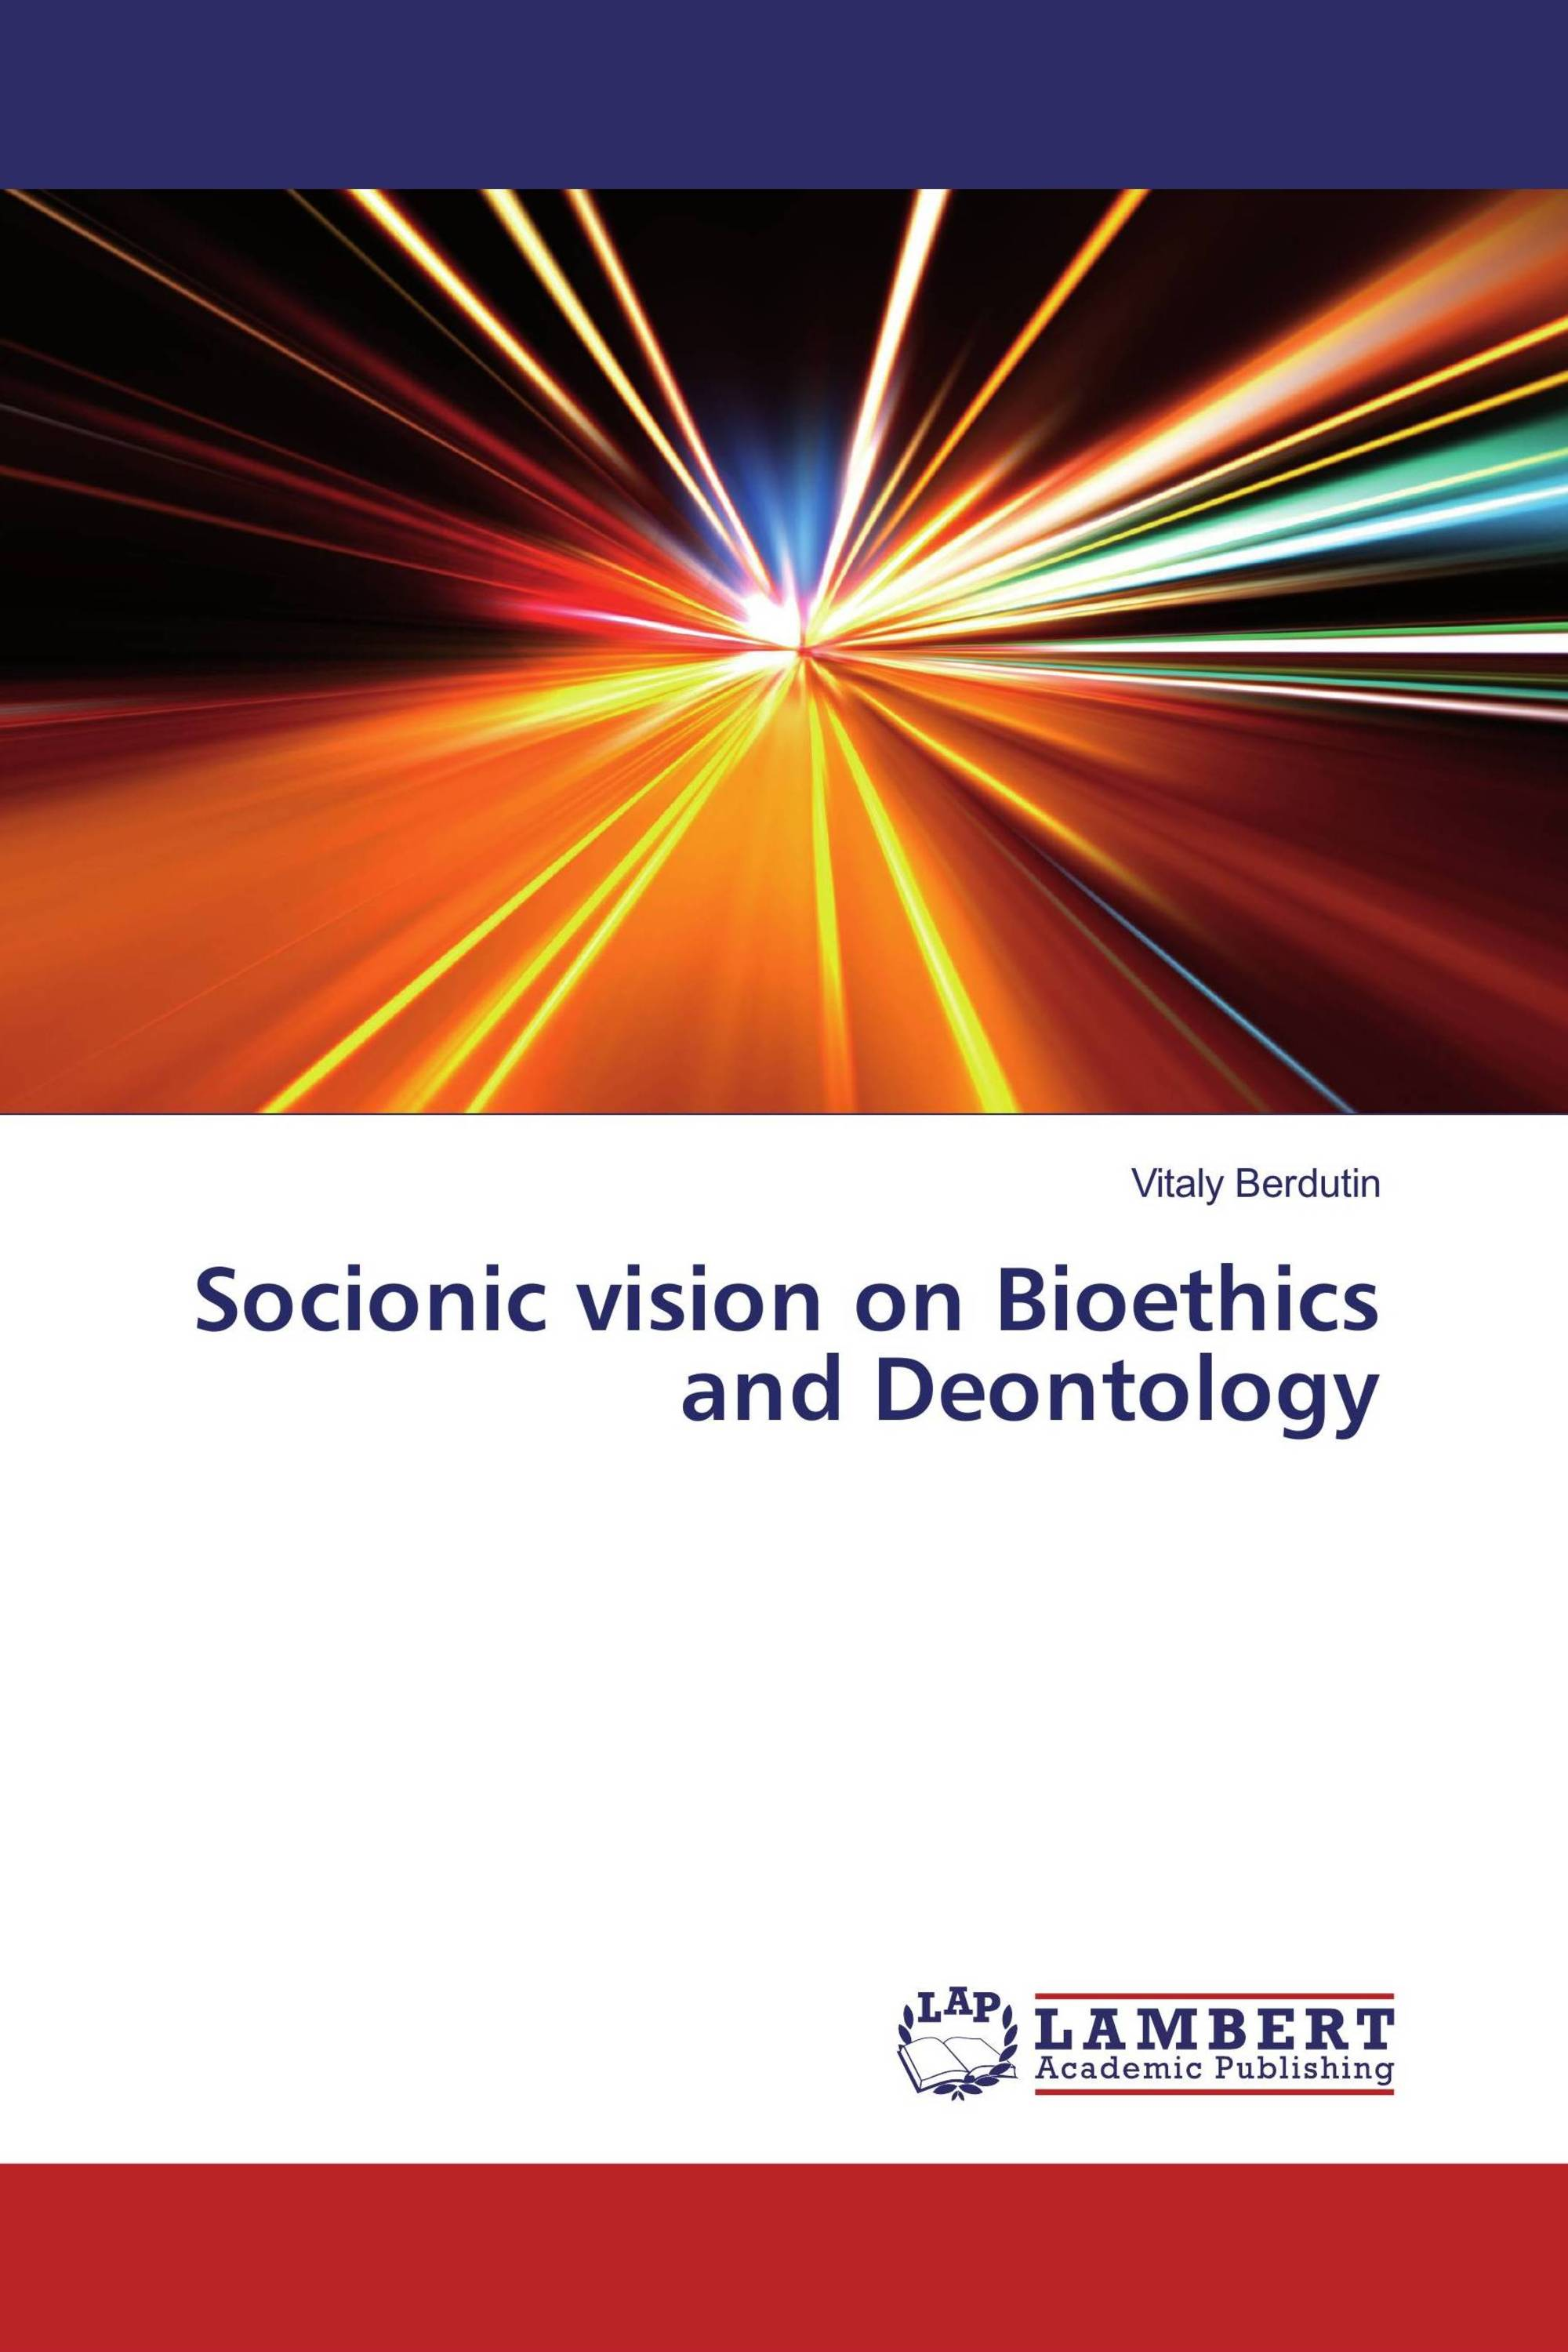 Socionic vision on Bioethics and Deontology